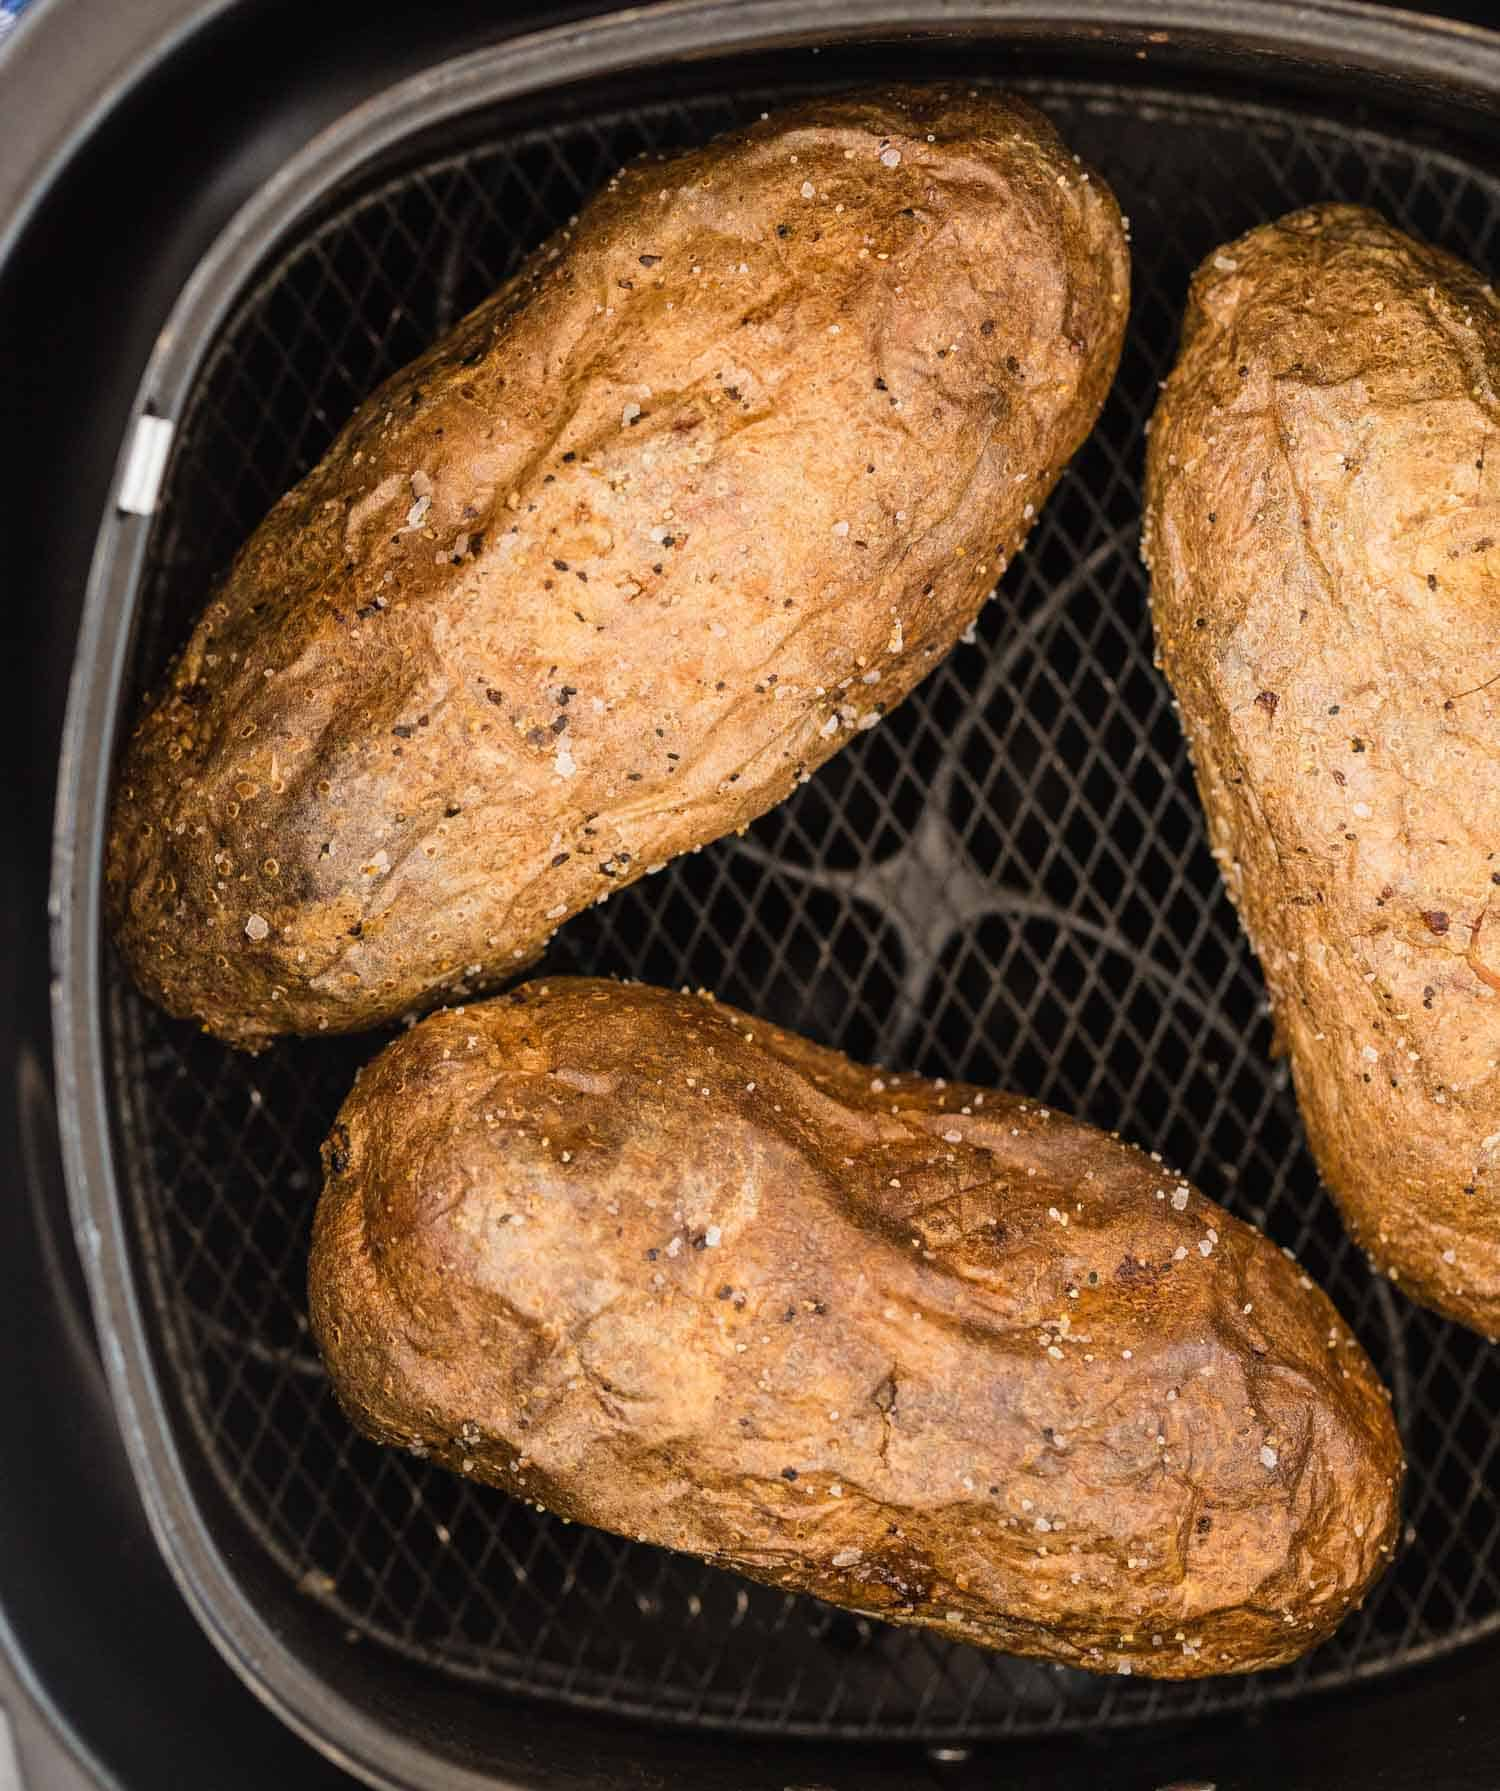 Close up of baked potatoes in an air fryer basket.